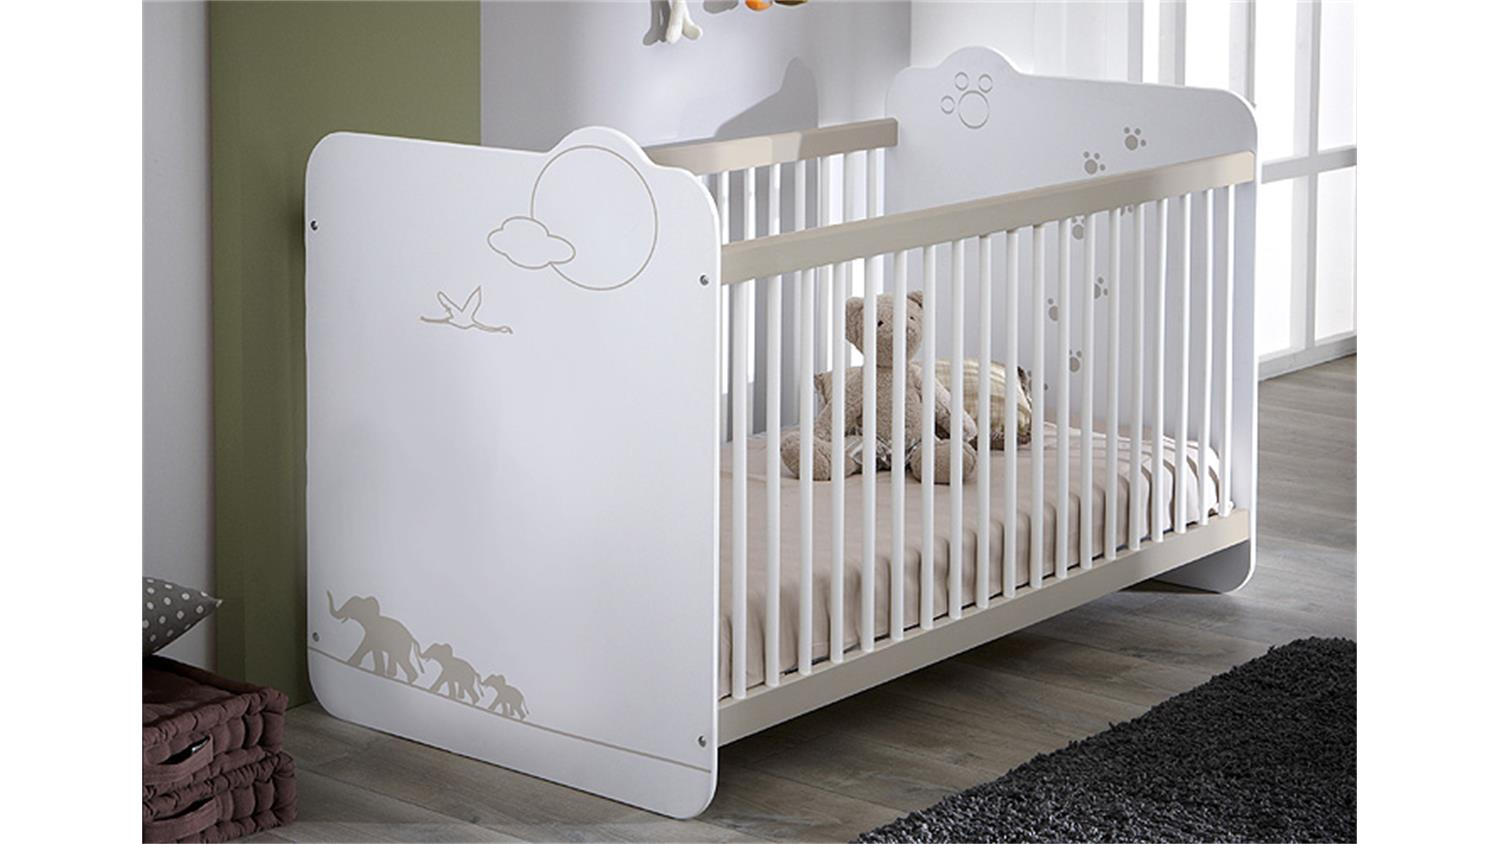 babybett jungle kinderbett bett in wei mit dschungelmotiv. Black Bedroom Furniture Sets. Home Design Ideas